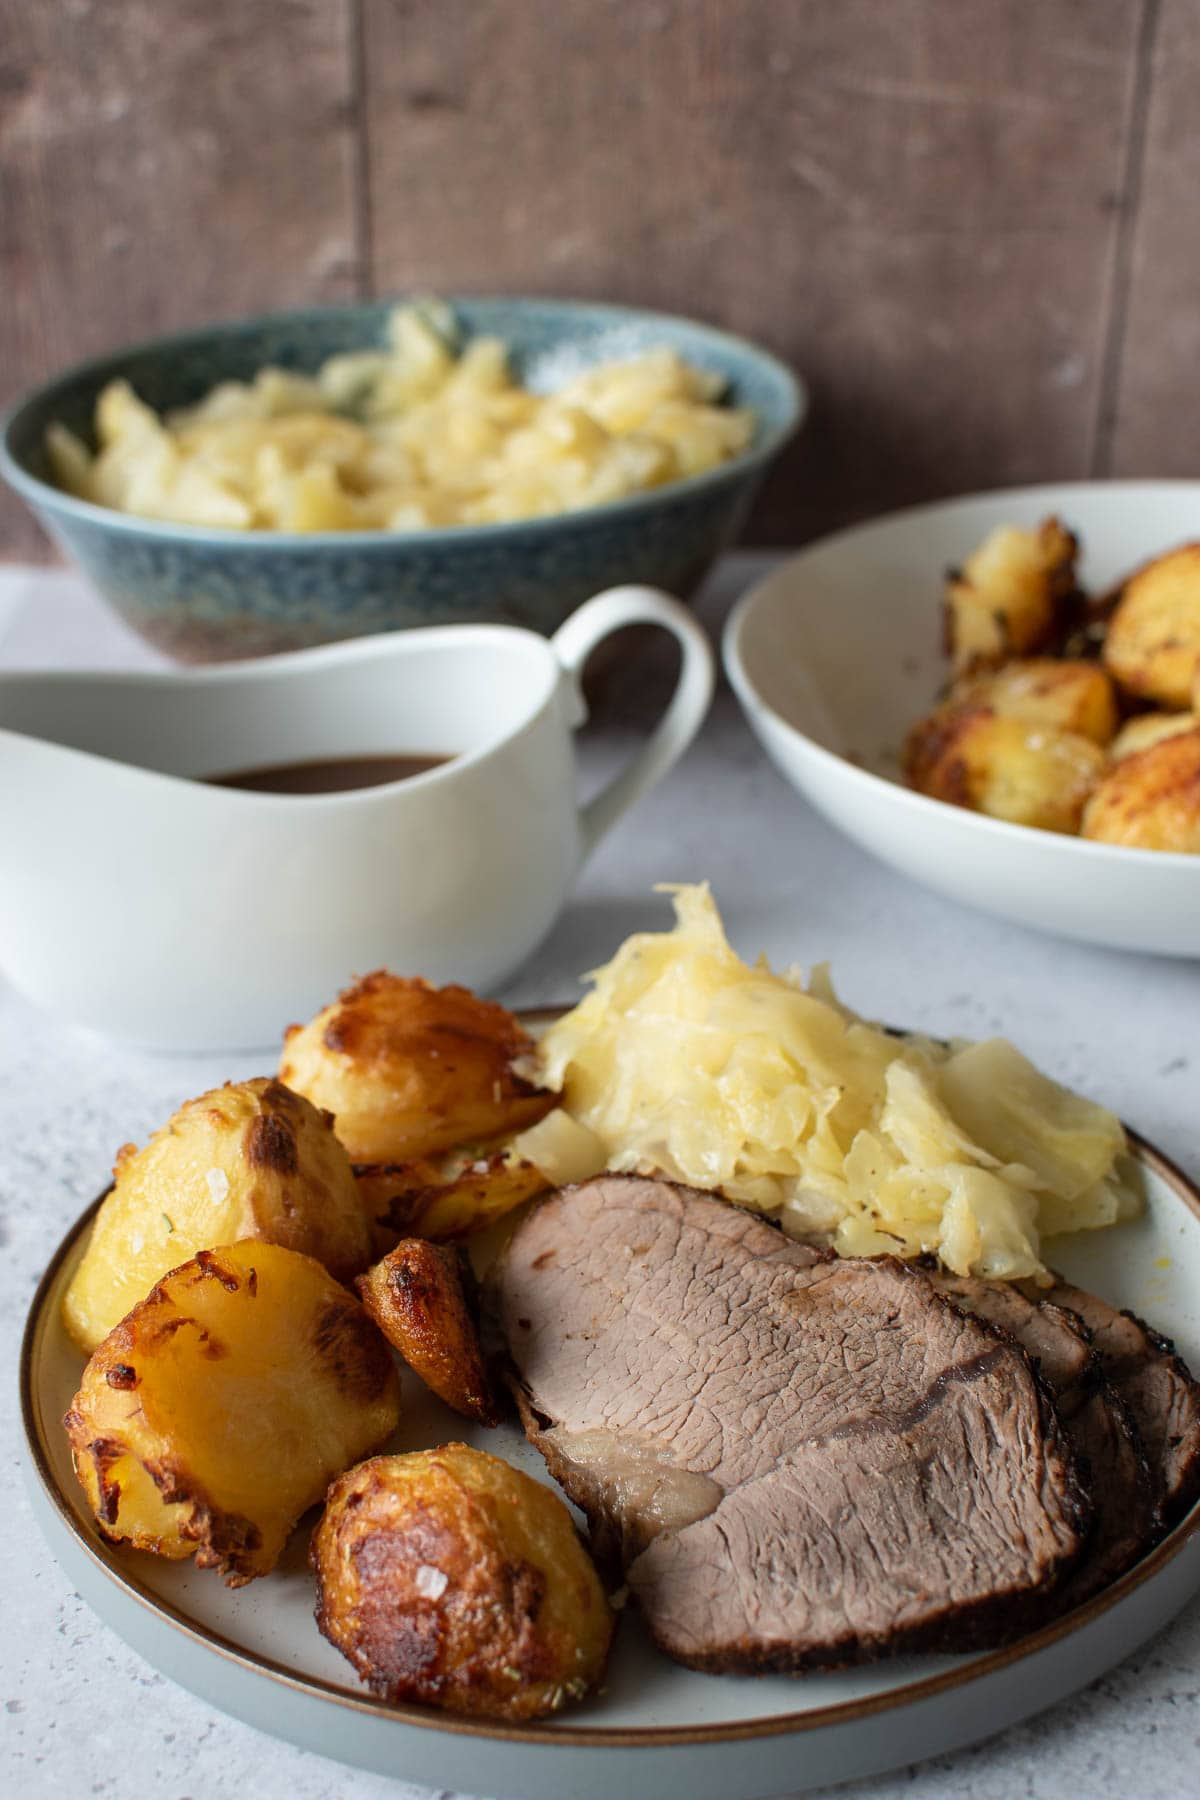 Roast dinner with air fryer roast beef, instant pot cabbage, crispy roasted potatoes and gravy.